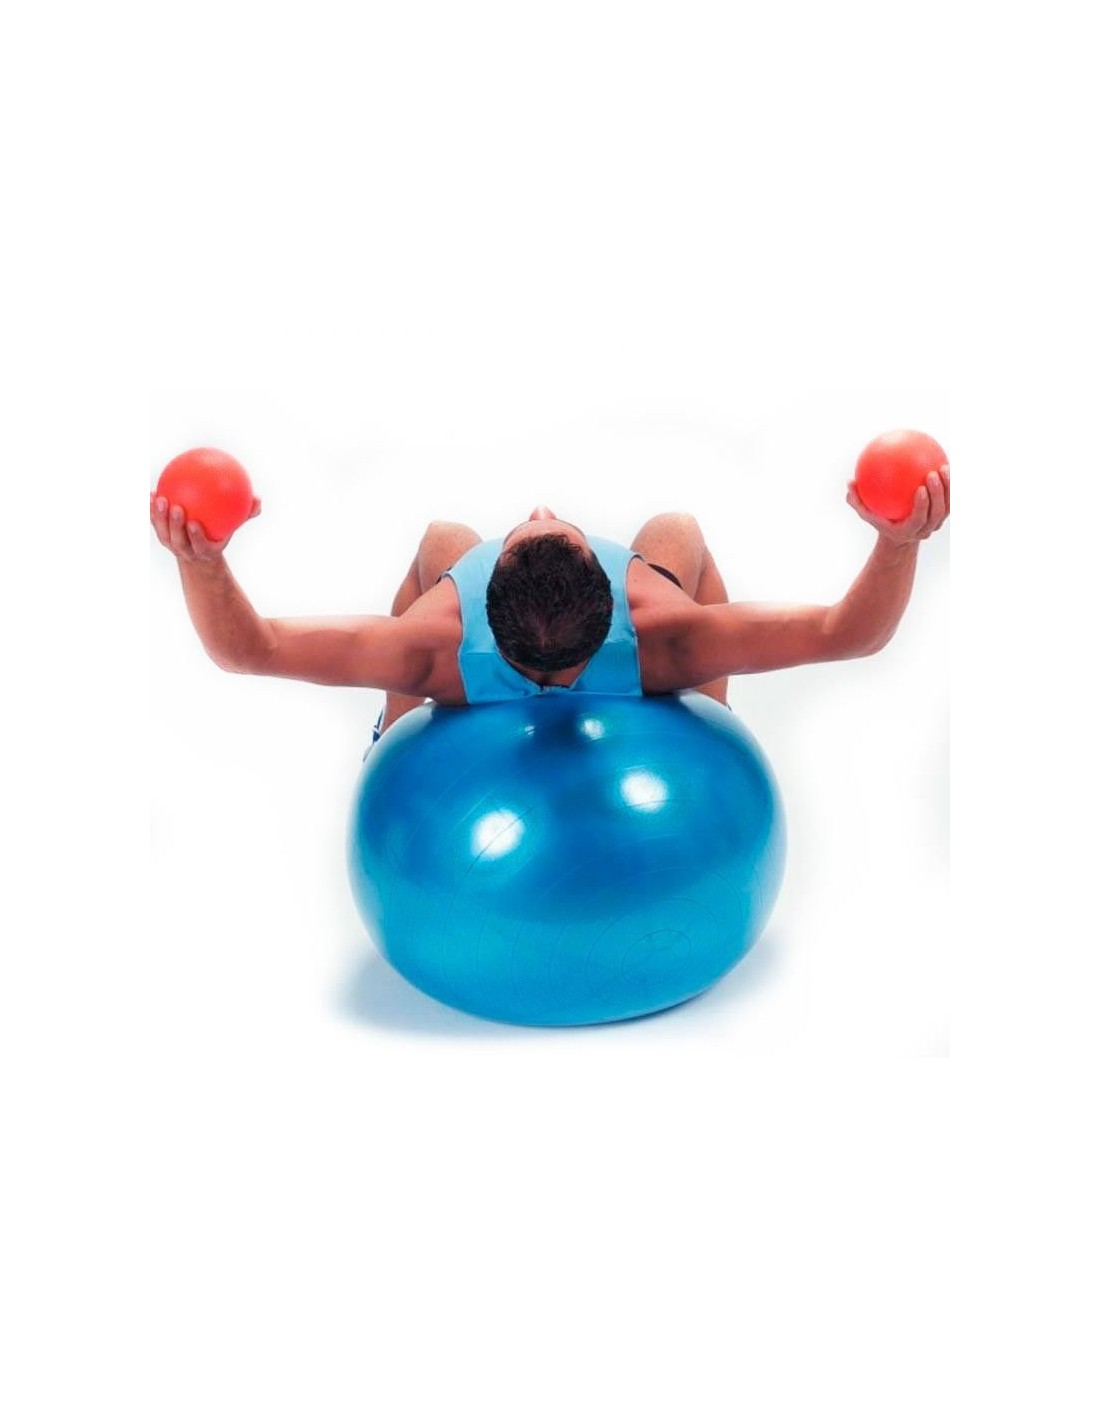 Balon de Yoga - Gym Ball - Accesorios de Yoga y Pilates  6abcea0ad72a